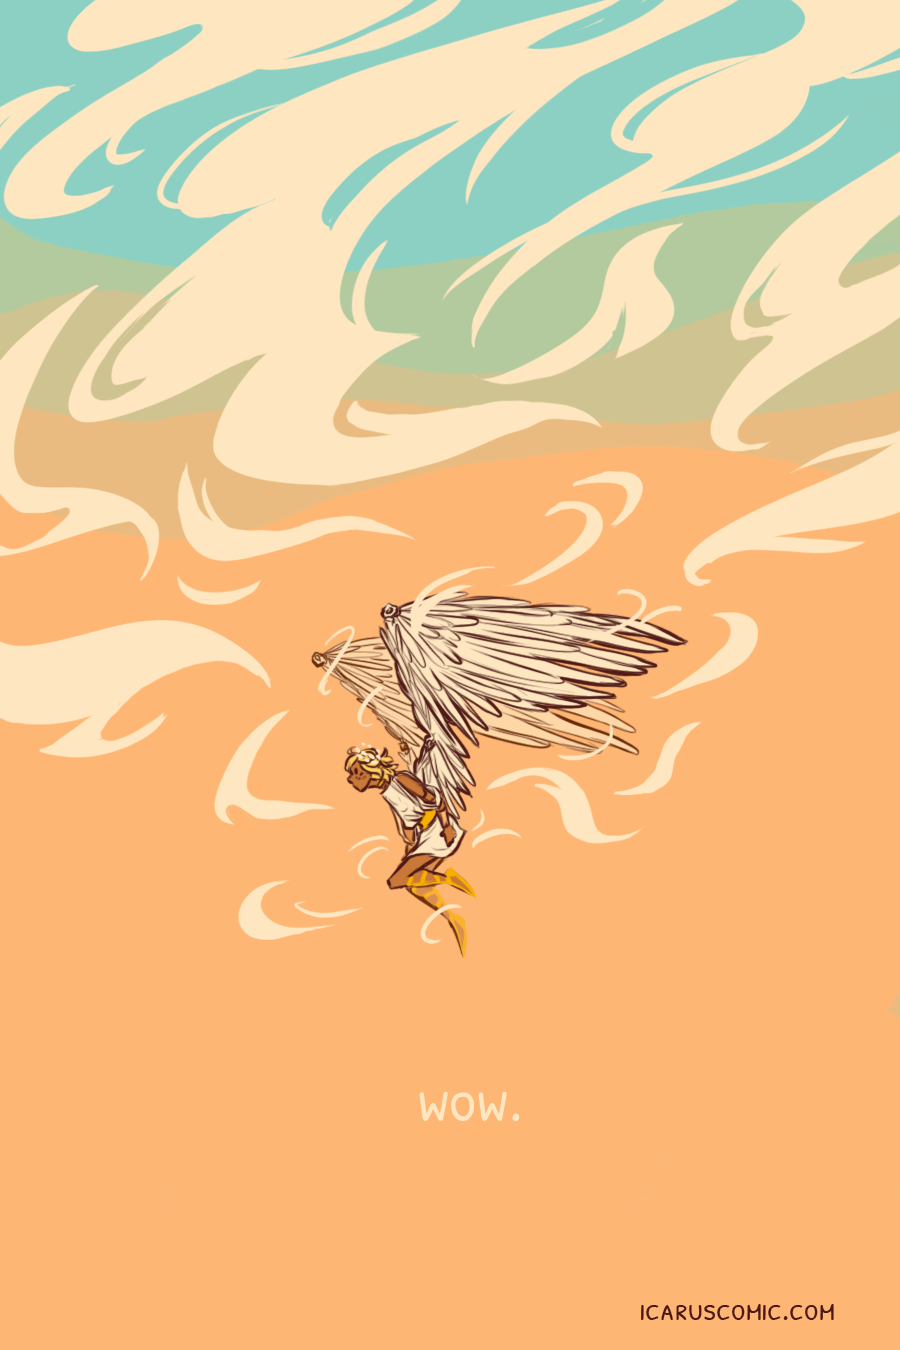 icarus v2 p20.png